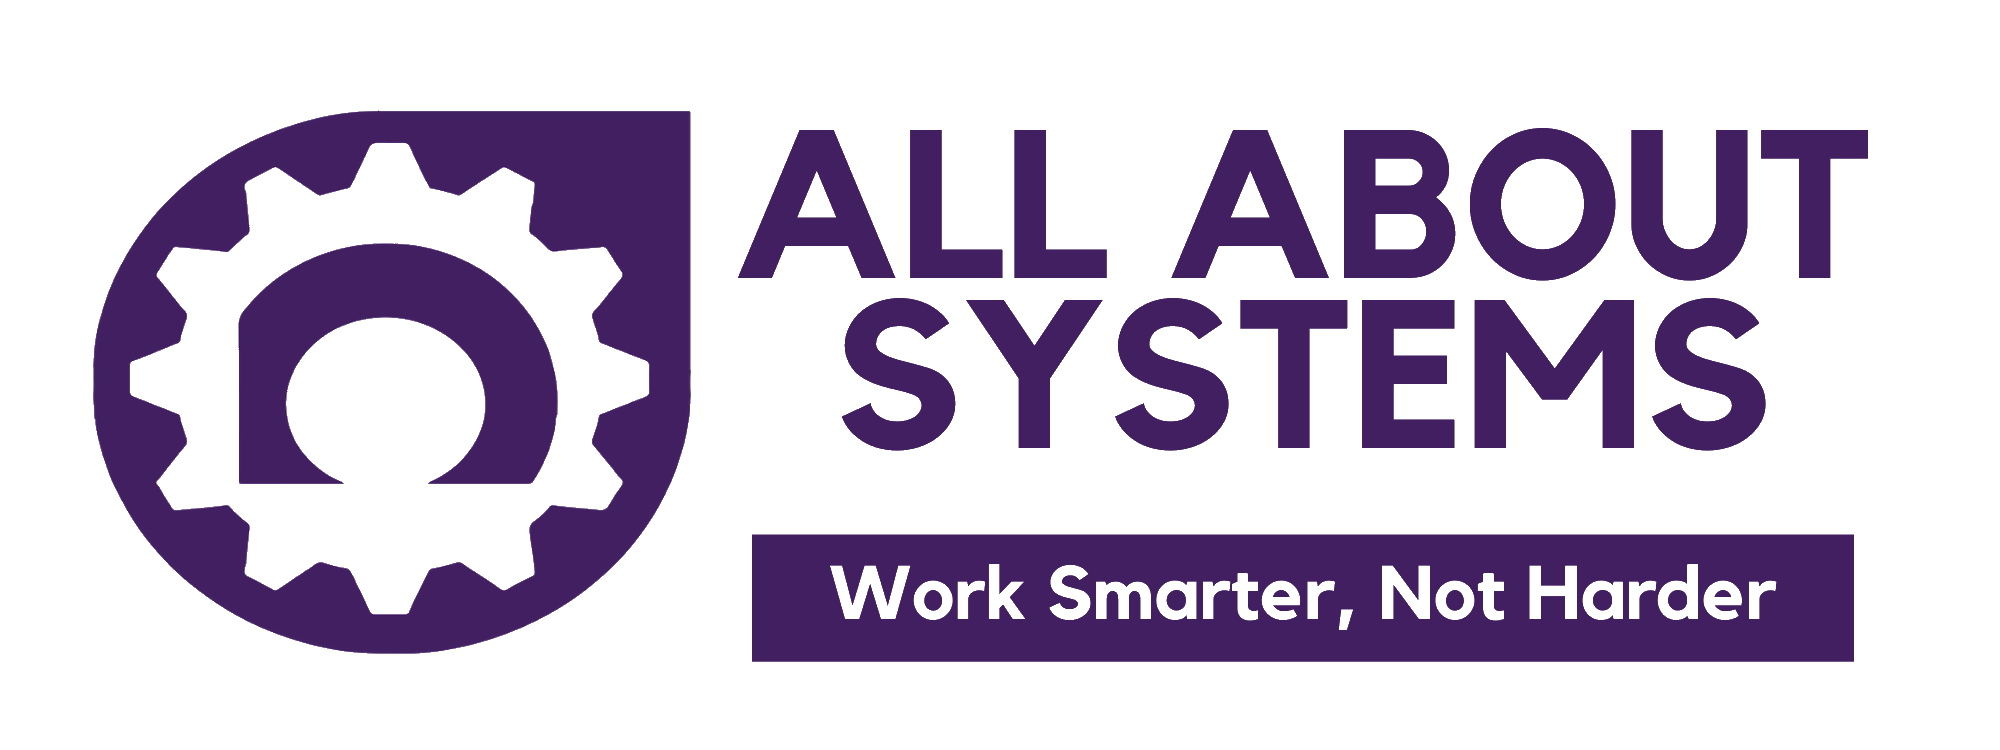 All About Systems